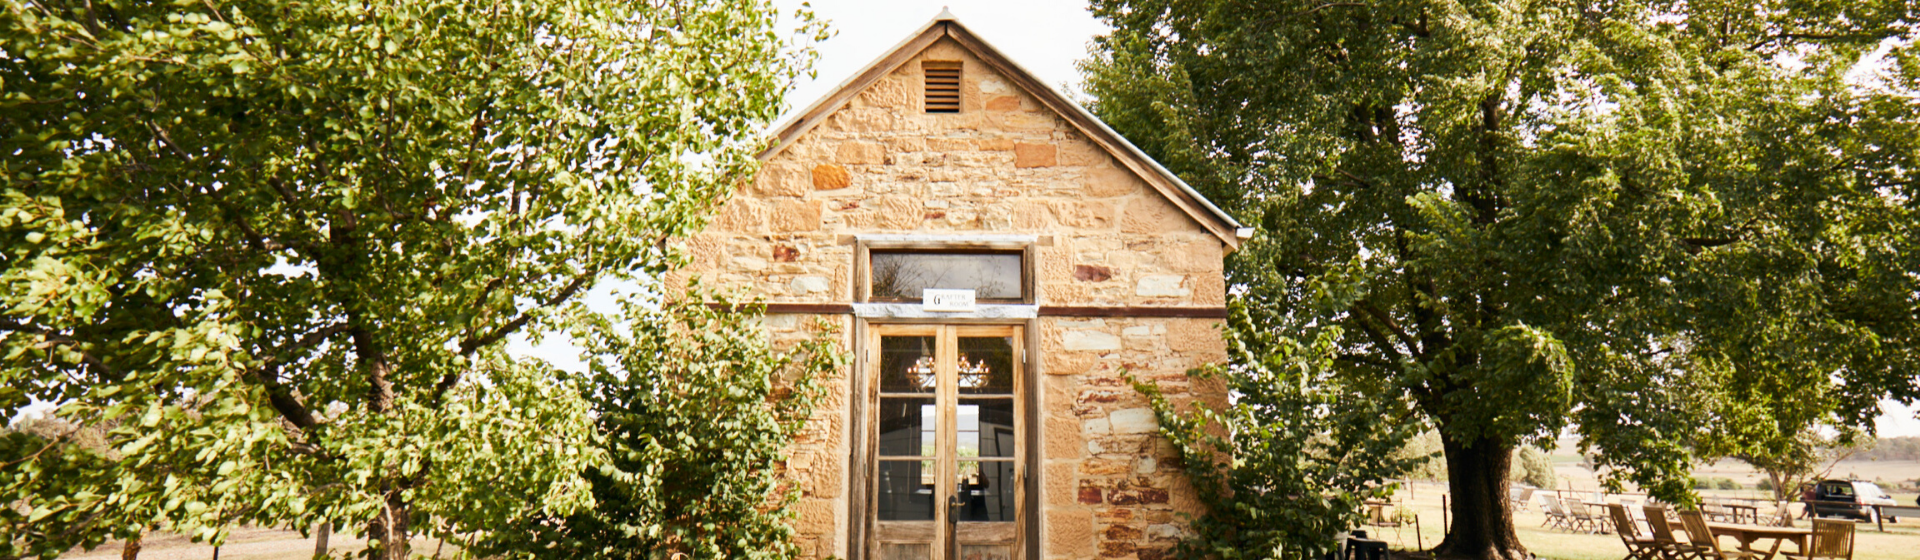 De Beaurepaire Wines historic cellar door